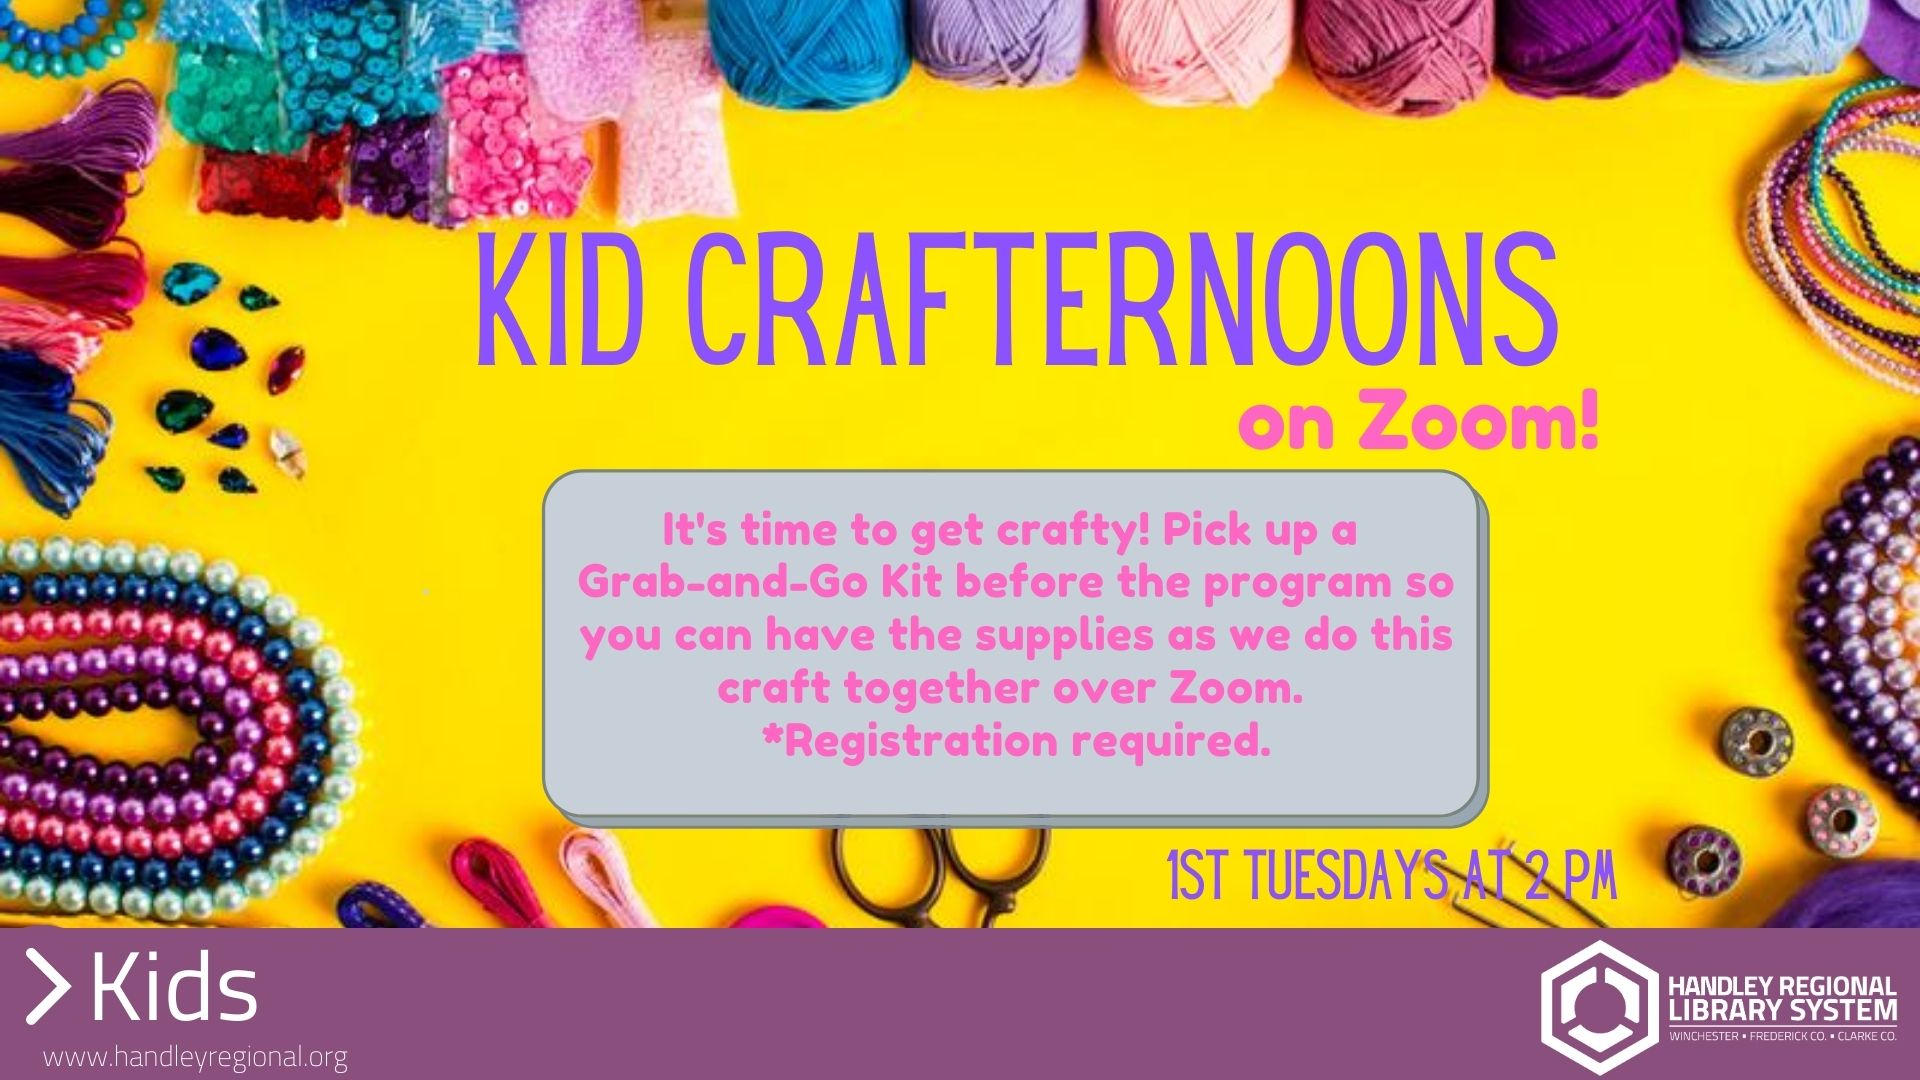 Kid Crafternoons slide